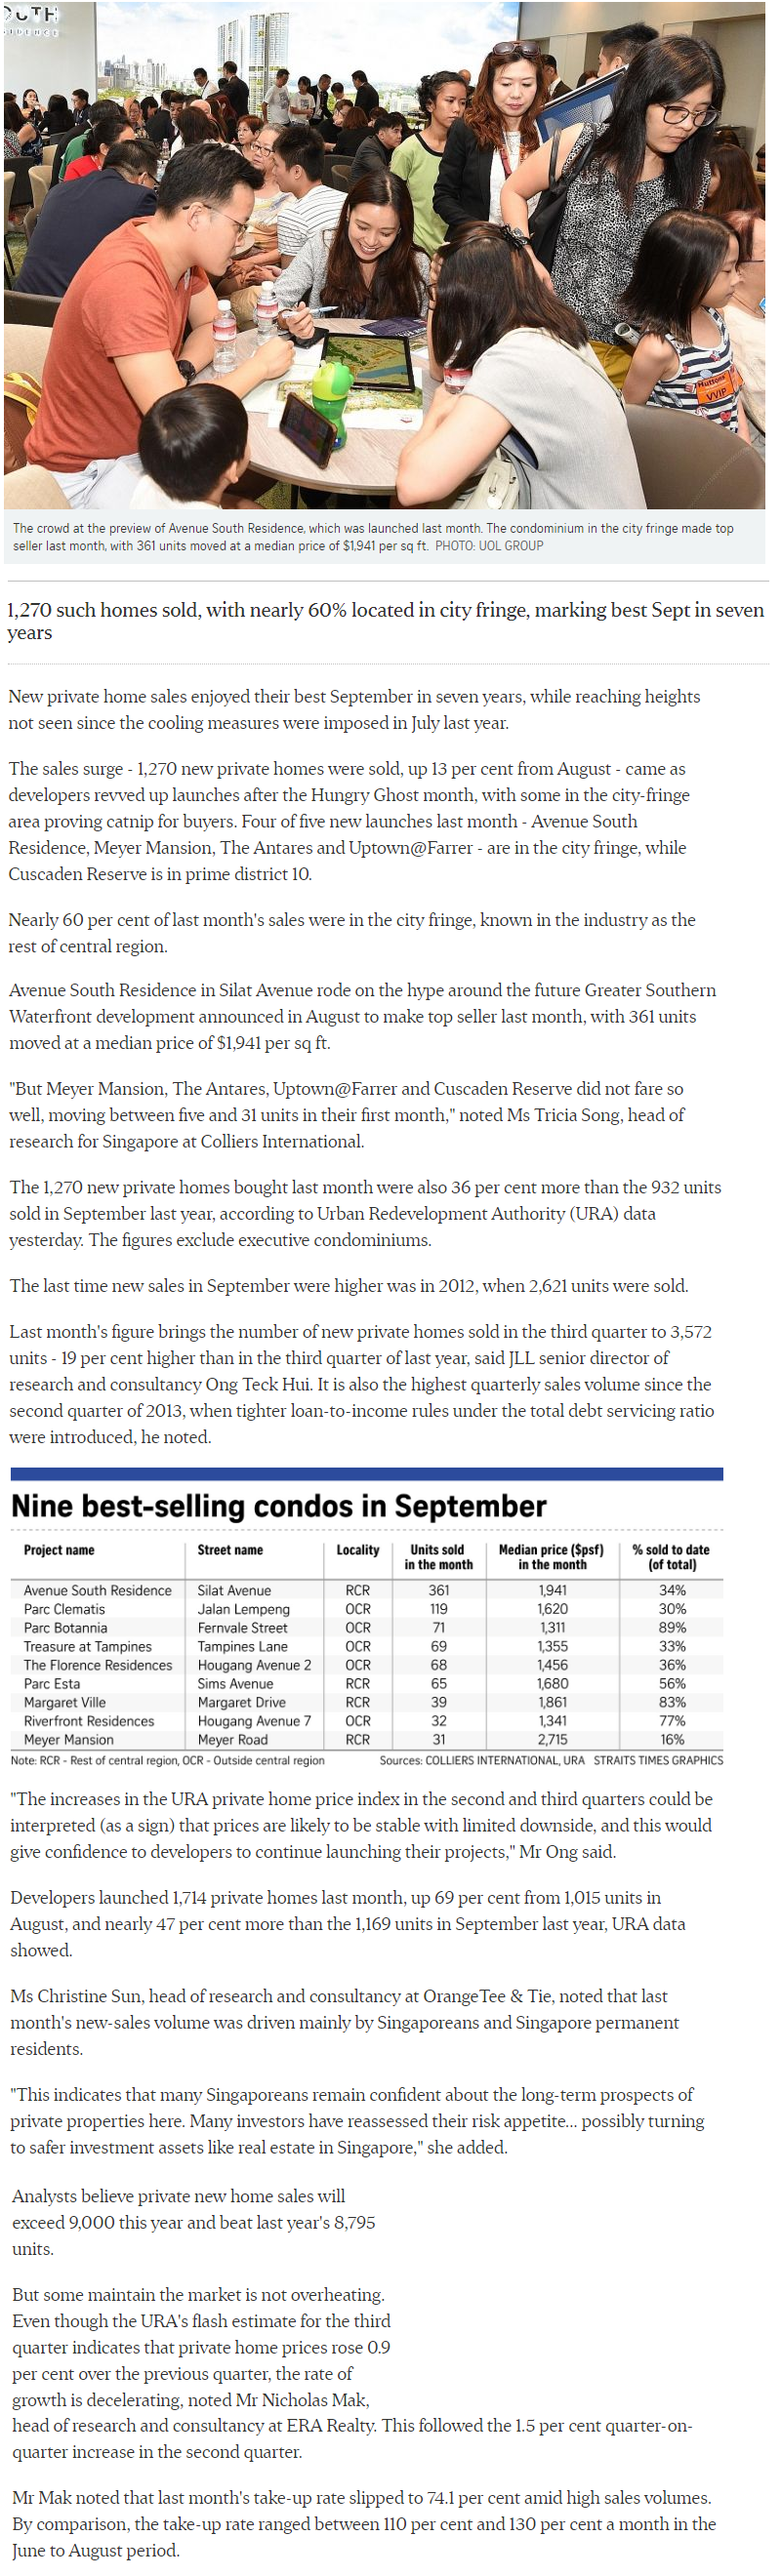 Clavon - New Private Home Sales Hit A High In Sept